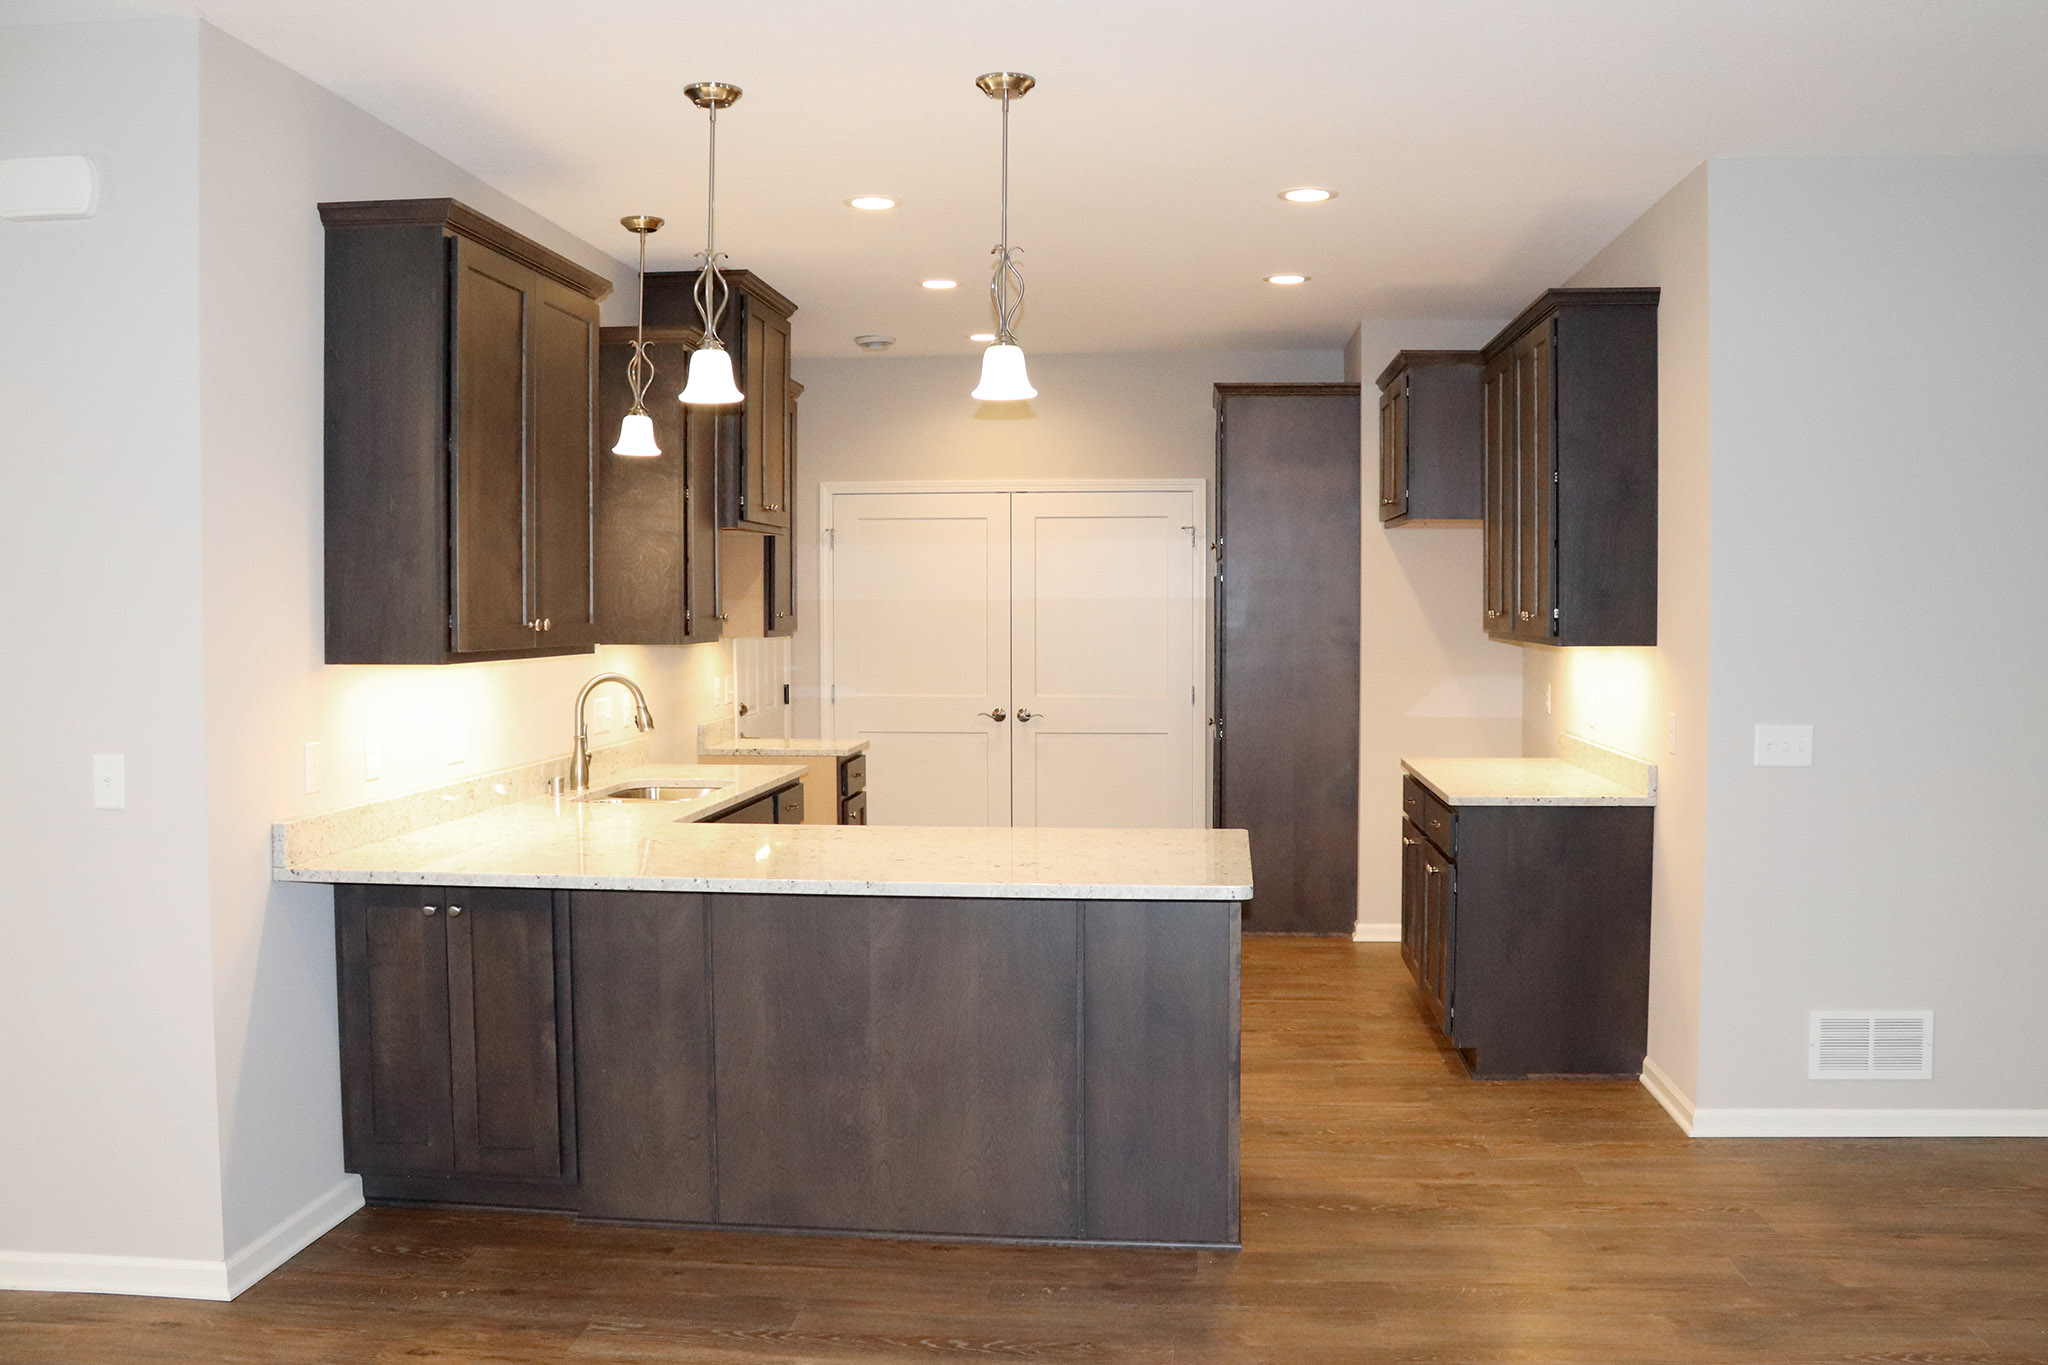 Kitchen with dark wood cabinets and light countertops